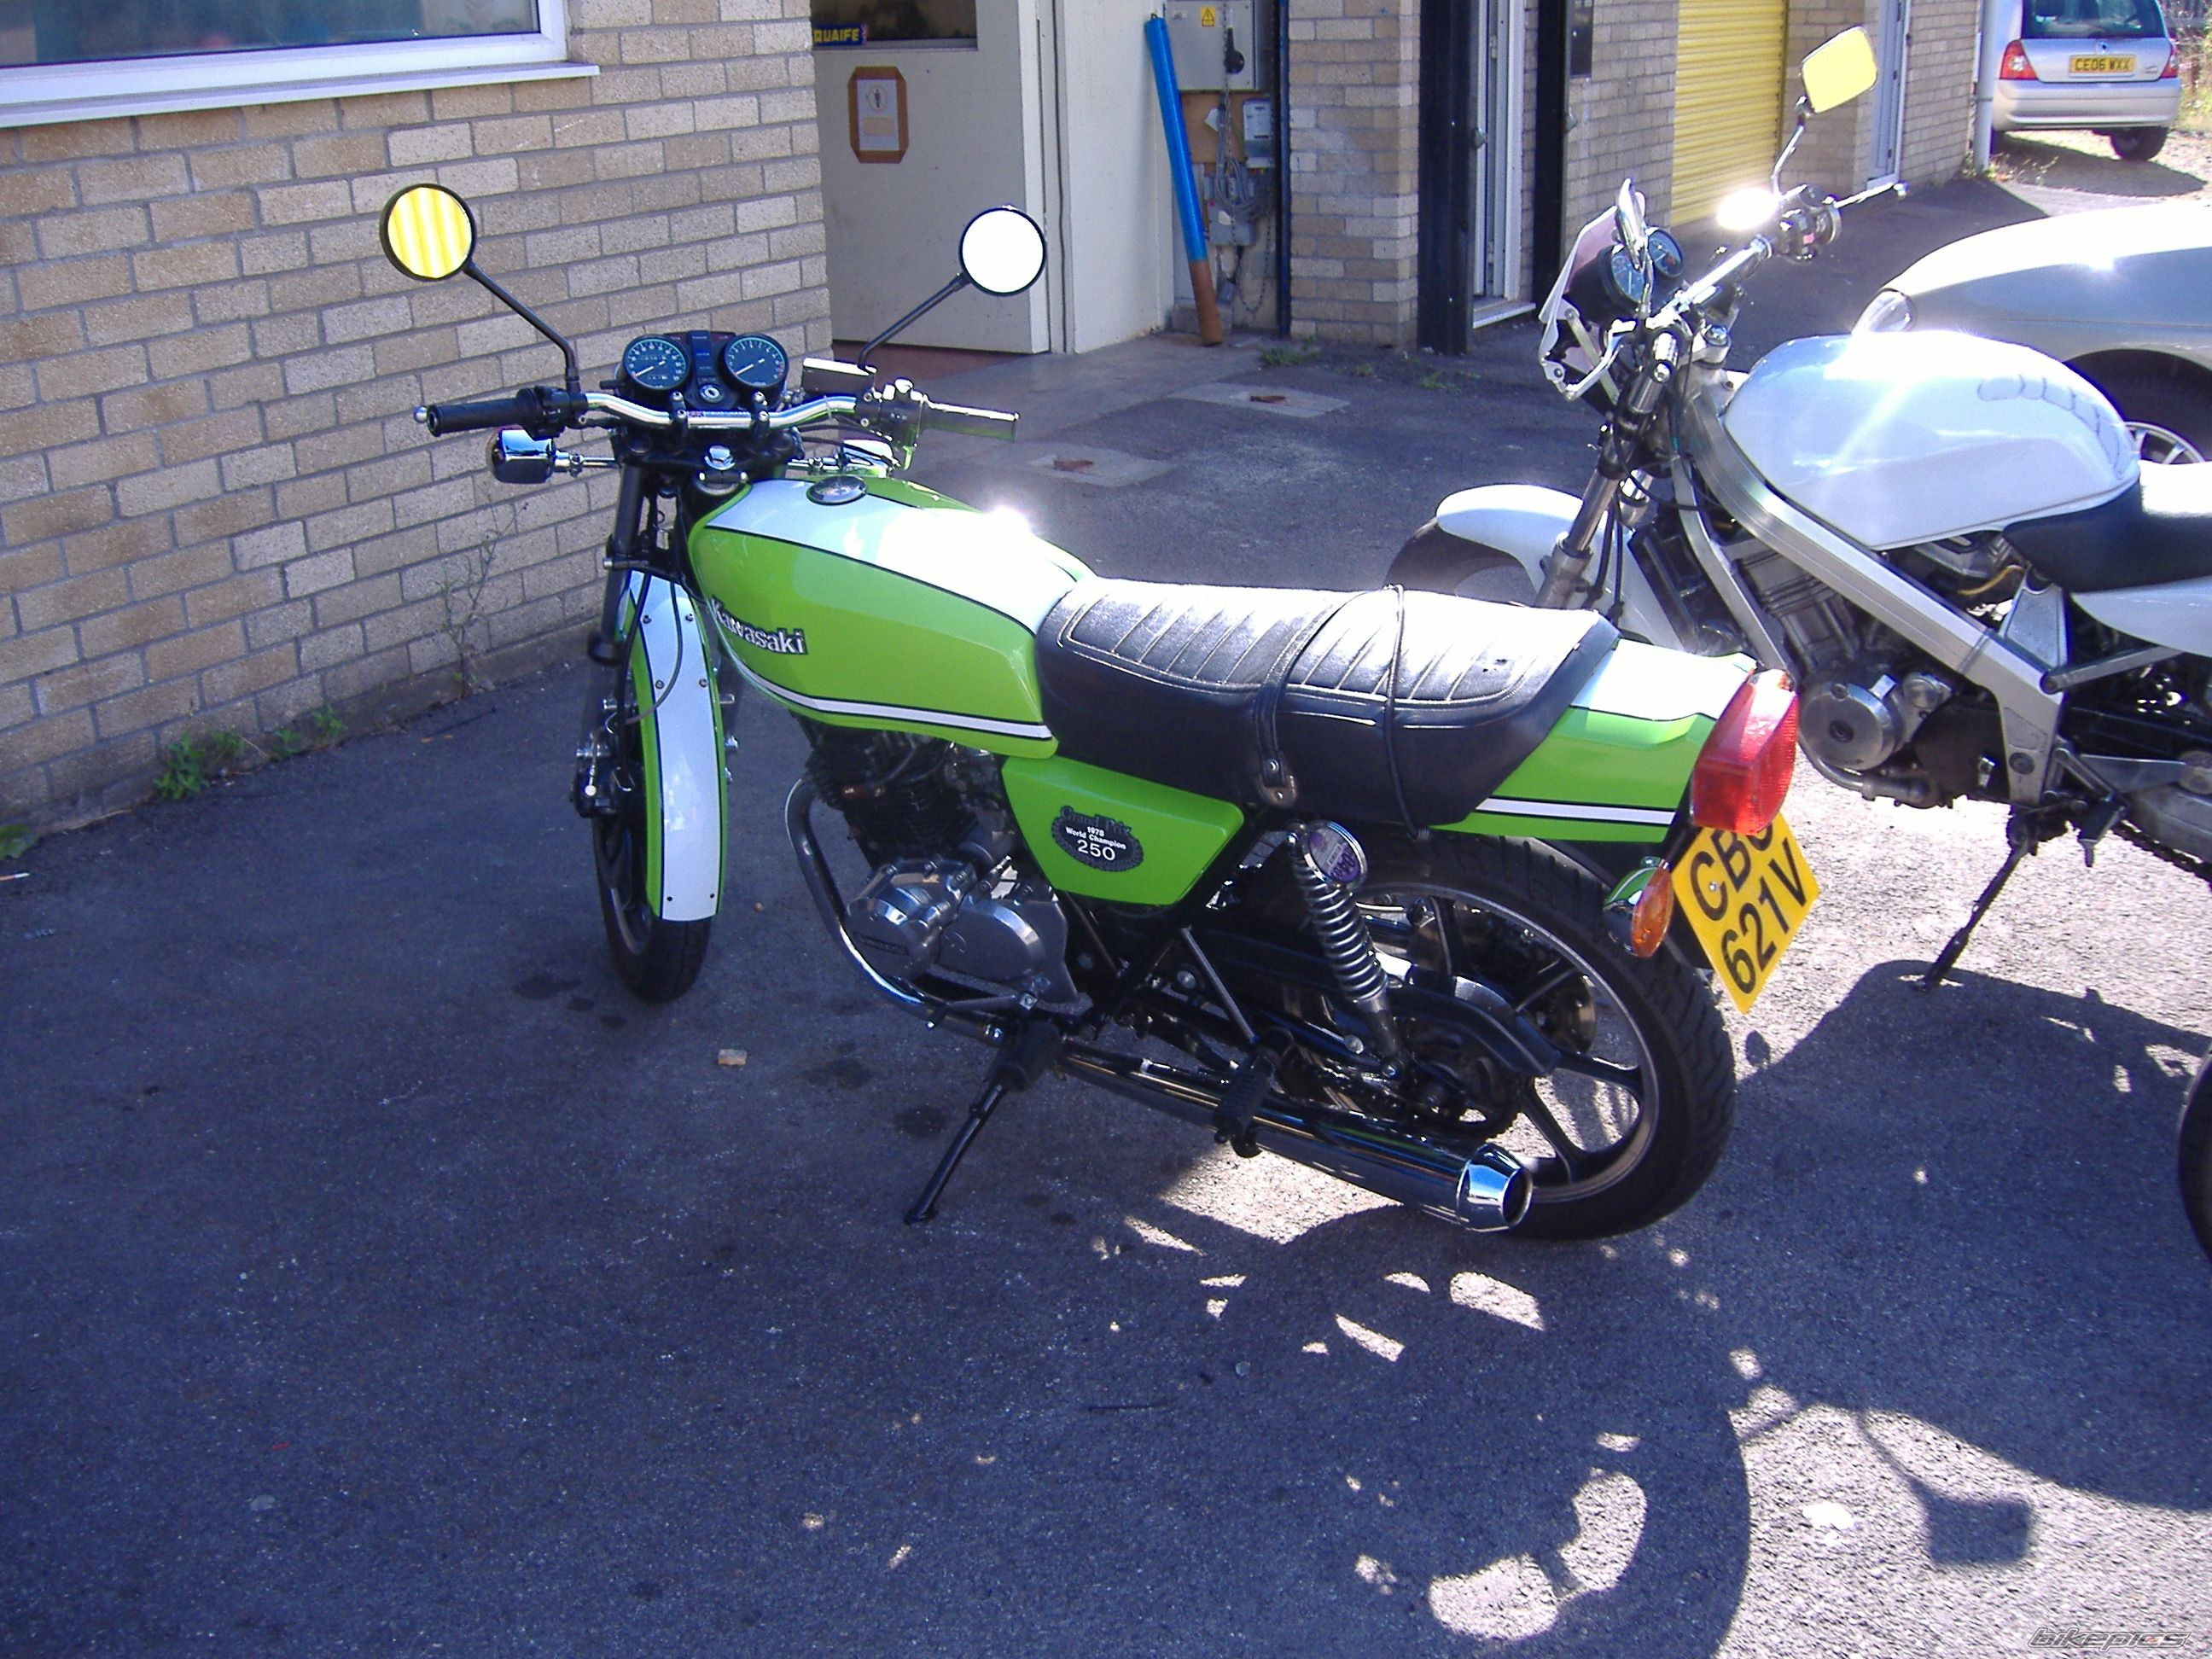 1979 KAWASAKI Z 250 | Picture 833825 motorcycle photo